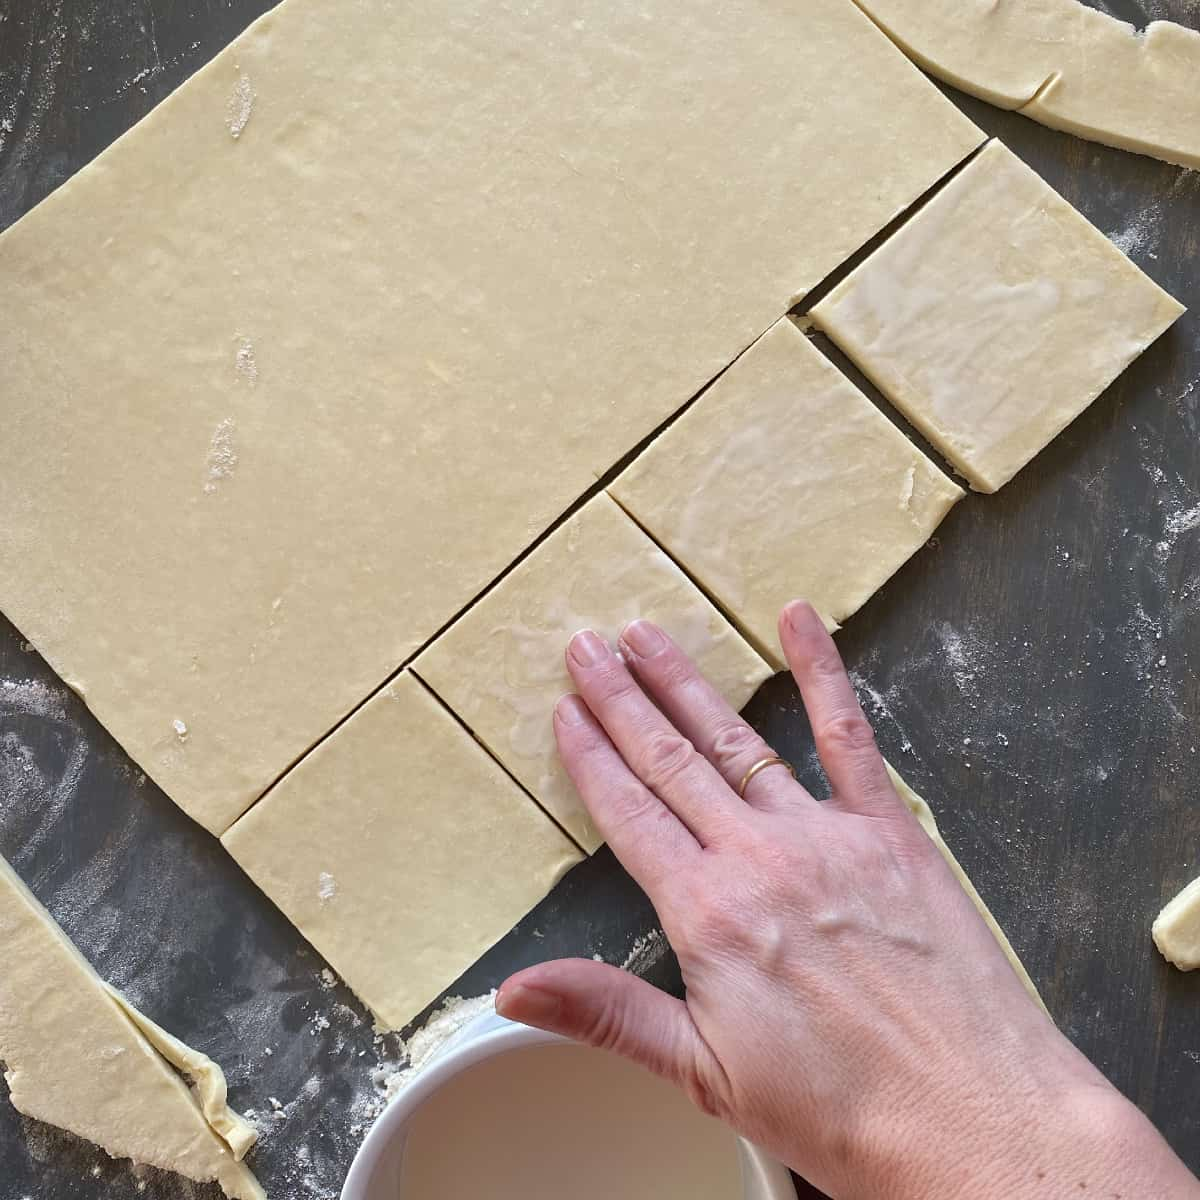 homemade puff pastry that has been cut into squares and brushed with cream for baking